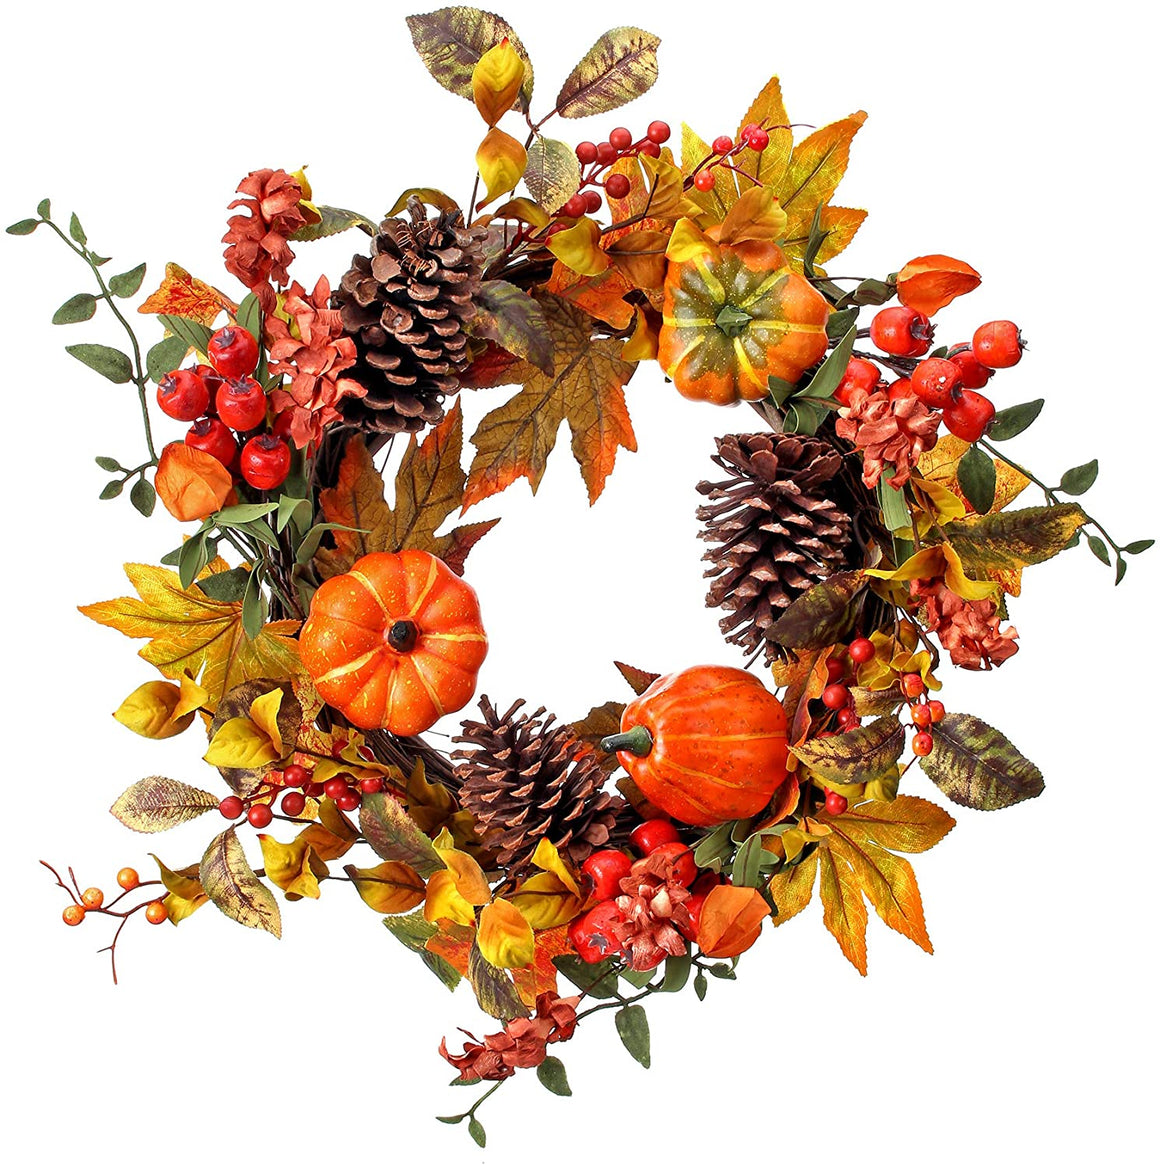 TenWaterloo 20 Inch Autumn Harvest Wreath with Artificial Pumpkins, Gourds Fall Leaves on a Grapevine Base